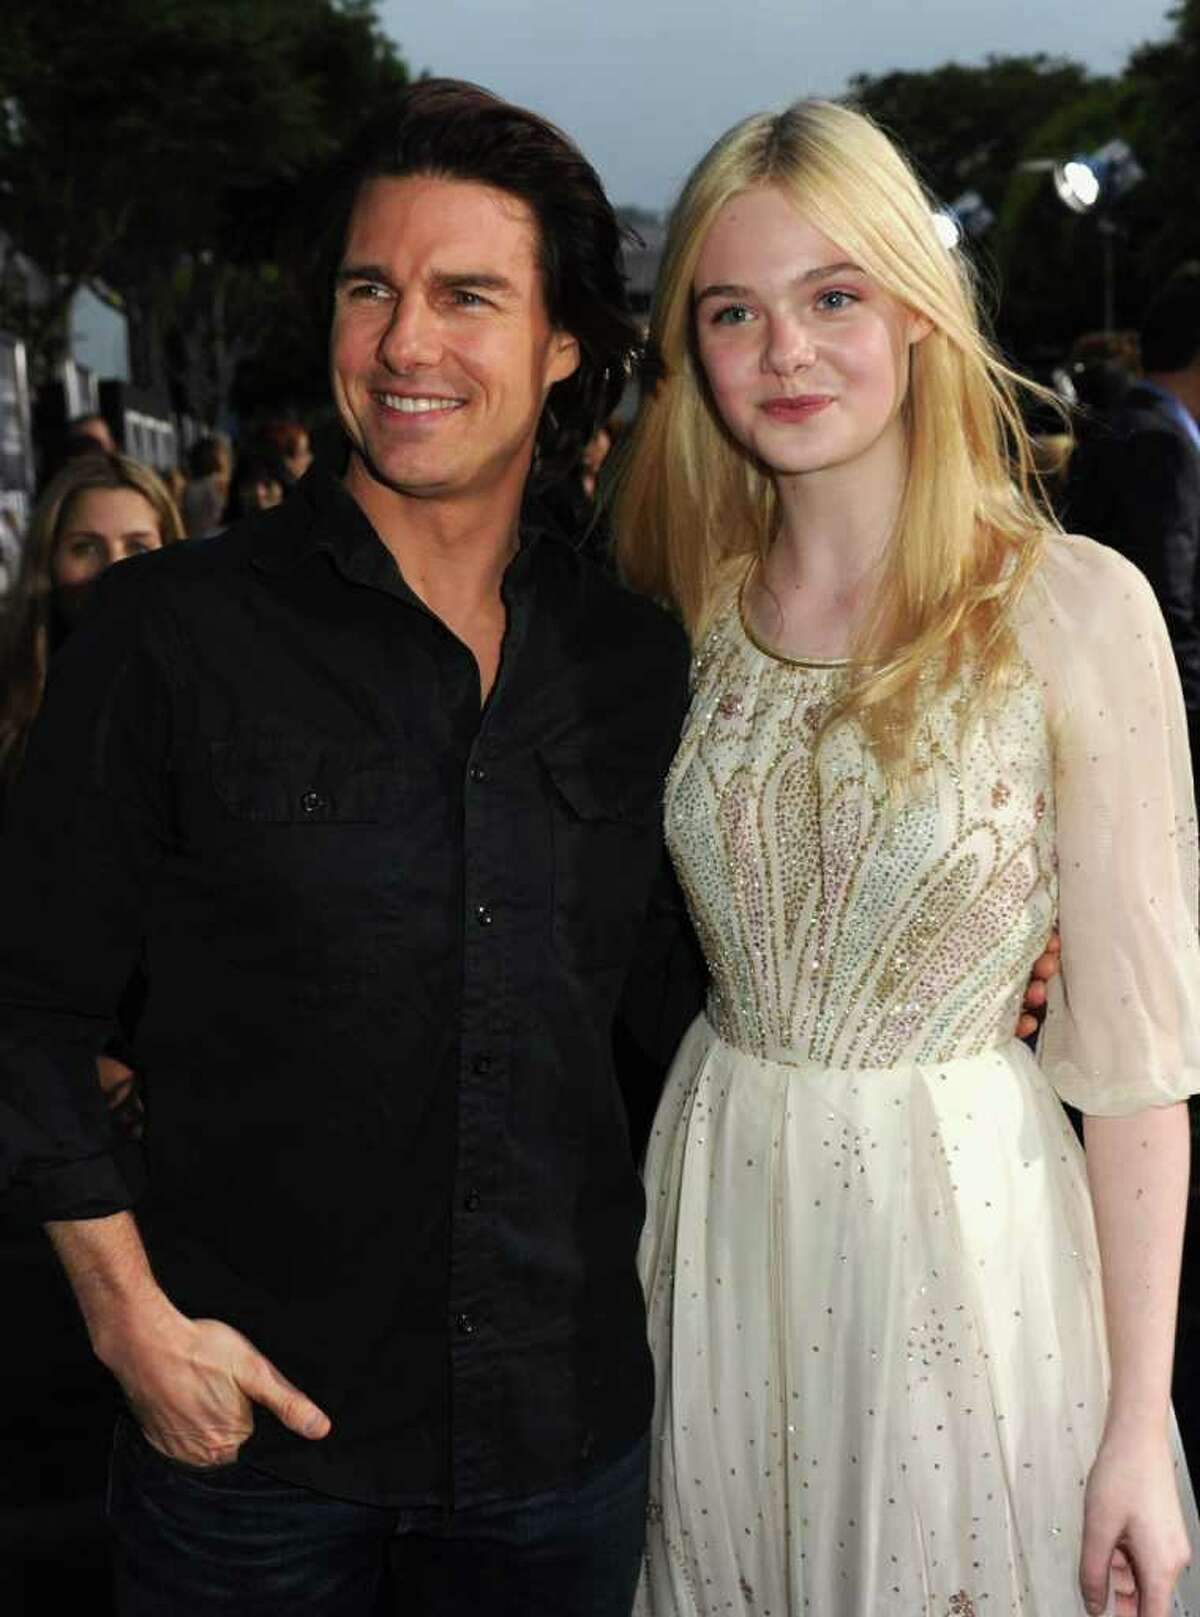 """Actors Tom Cruise and Elle Fanning arrive at the premiere of Paramount Pictures' """"Super 8"""" at Regency Village Theatre in Westwood, California."""